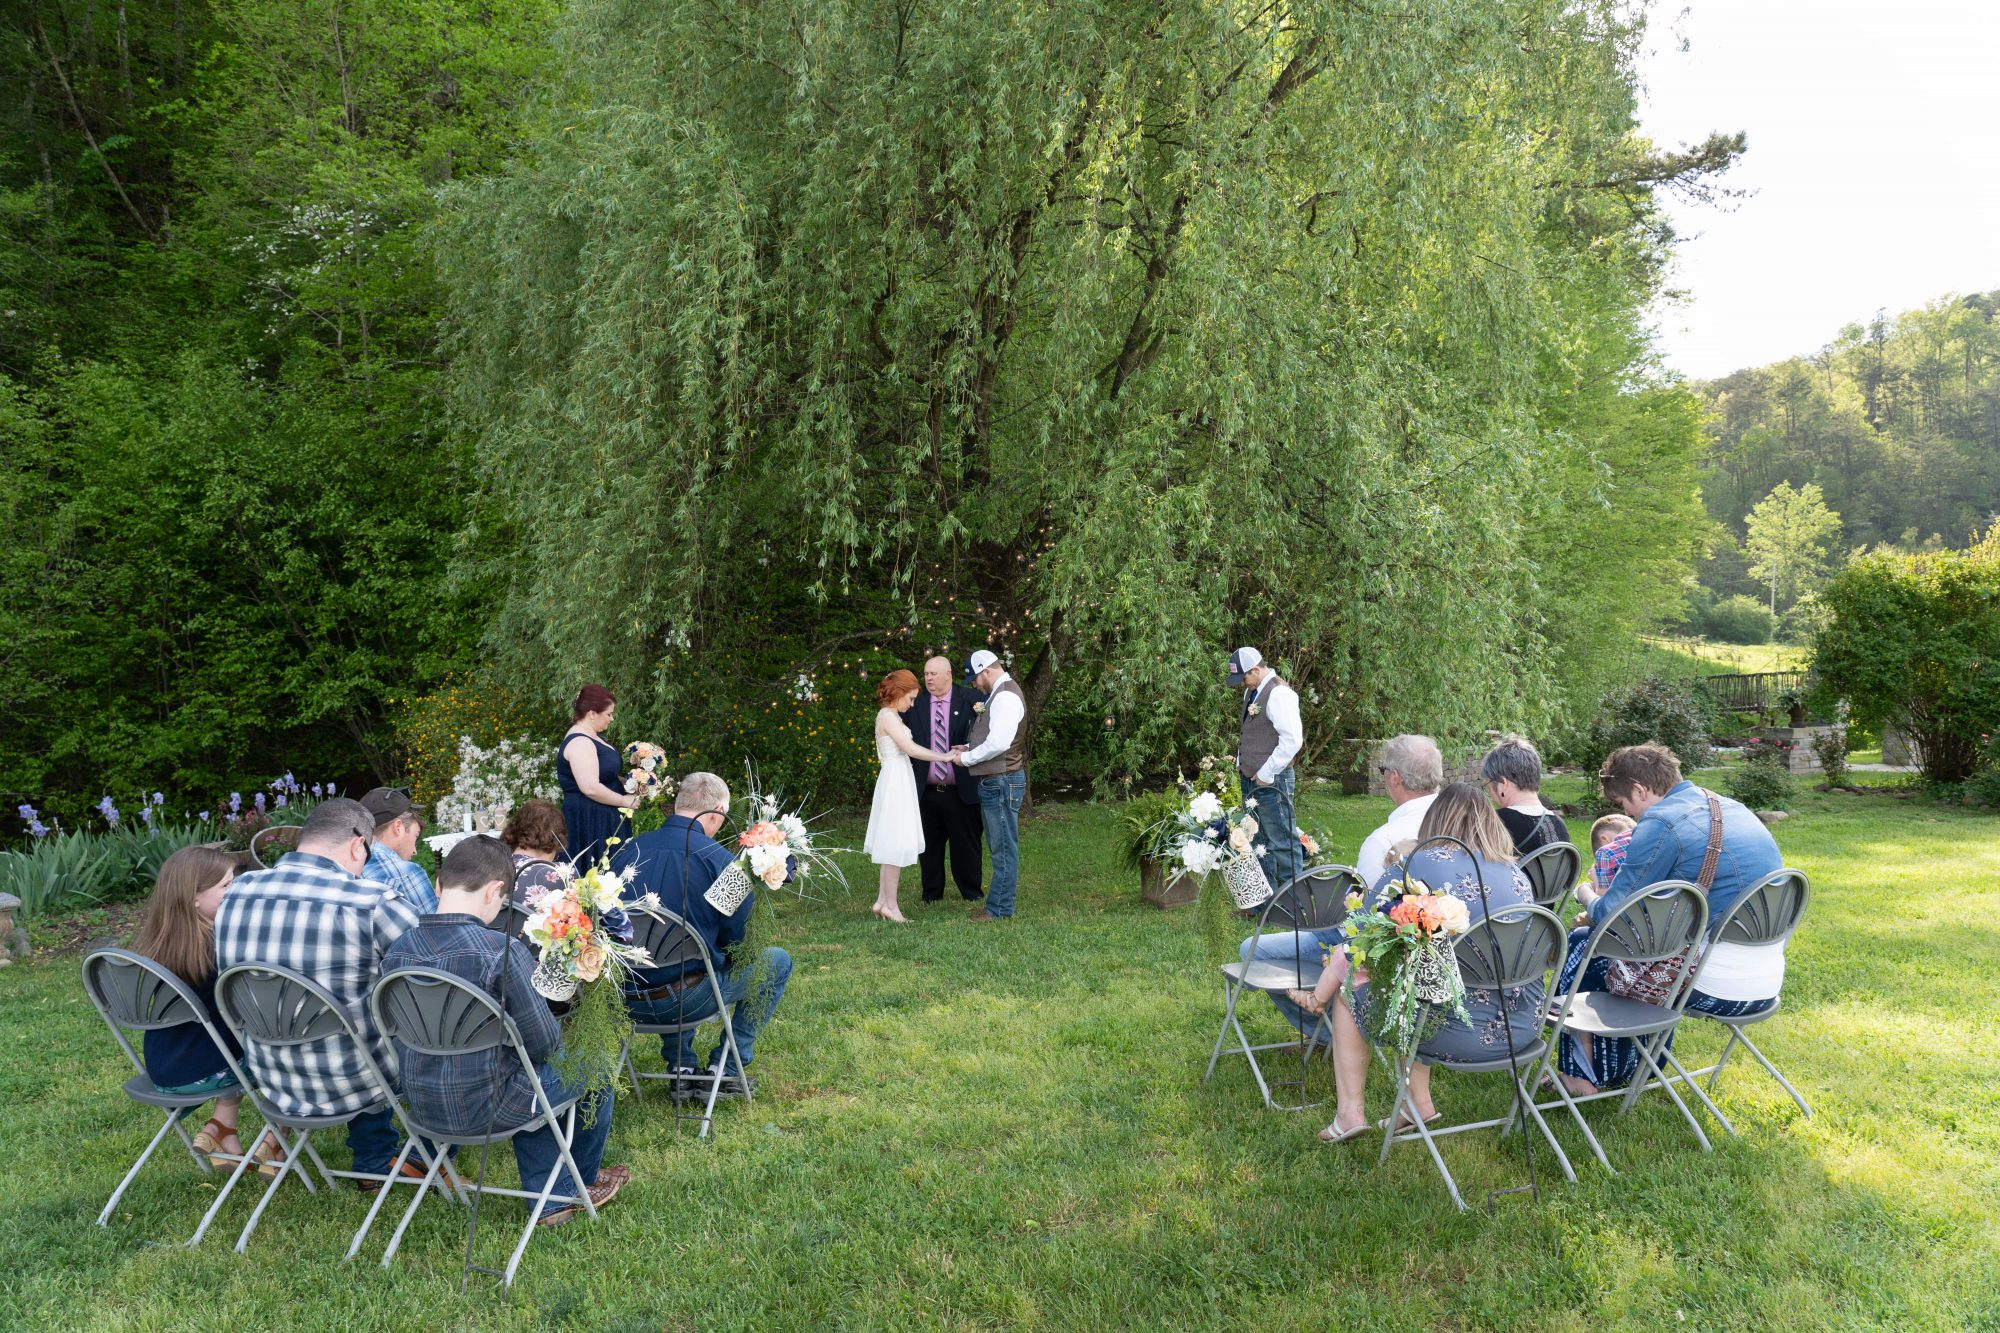 willow-tree-informal-guests-gray-chairs-April-1003 (1)-min